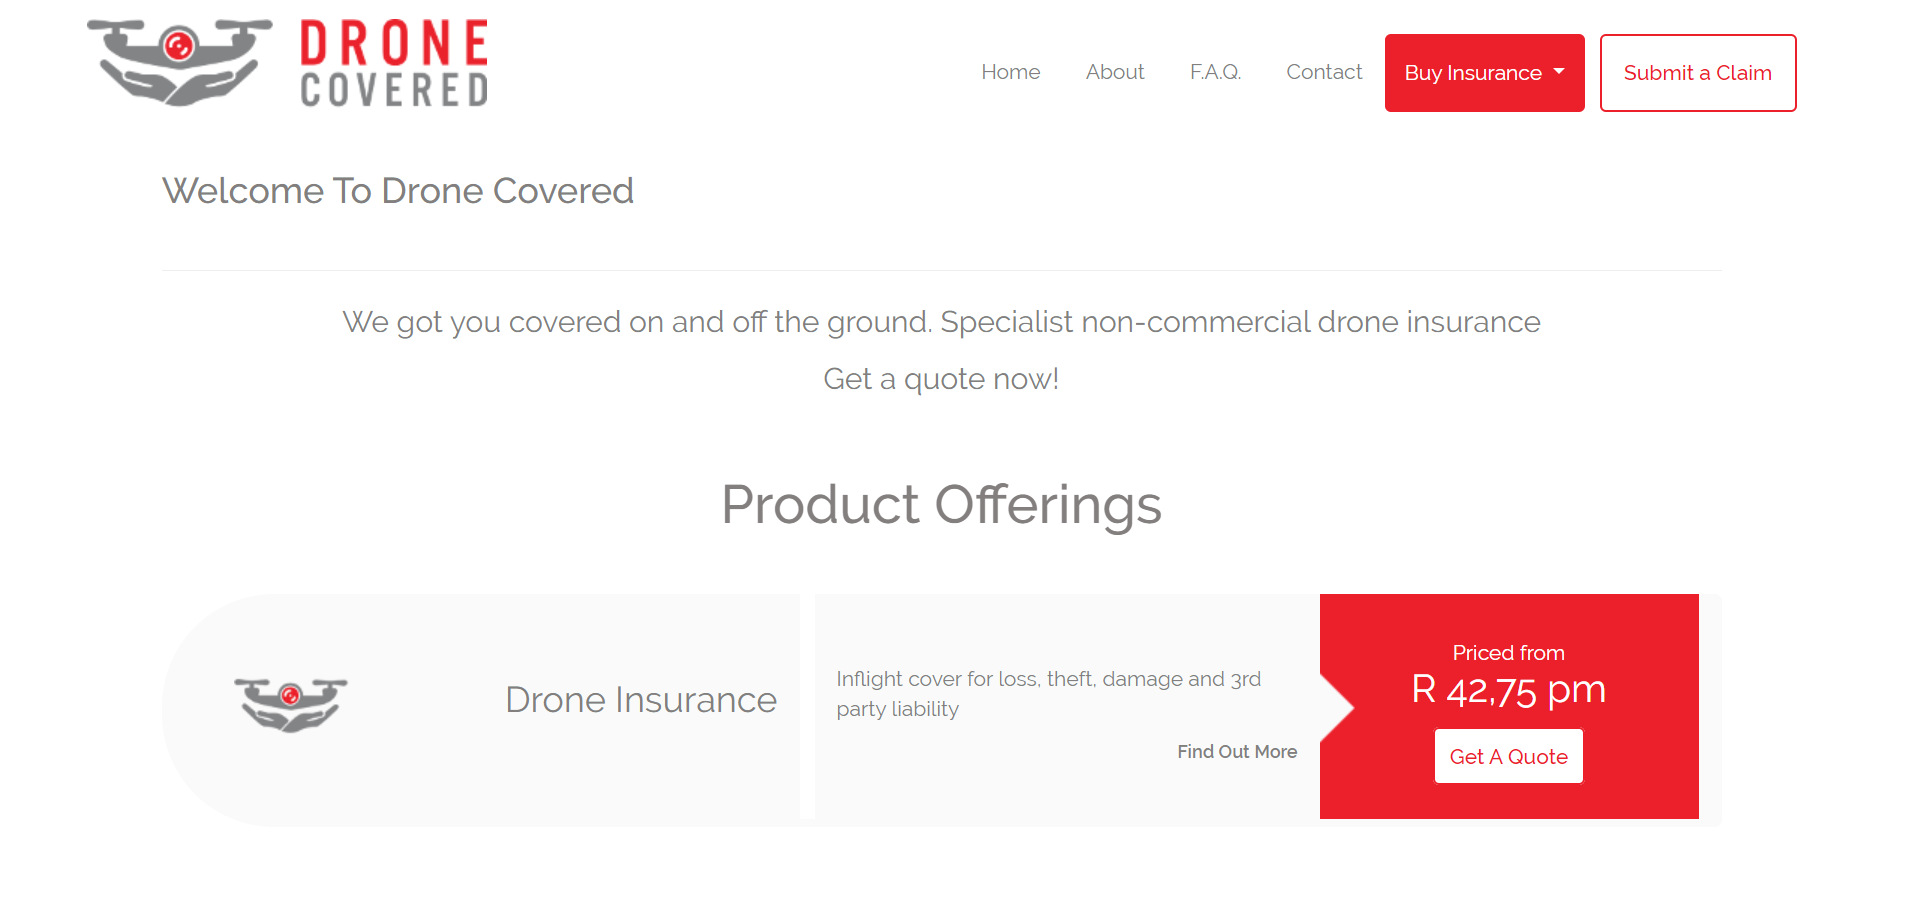 Drone insurace South Africa buy online